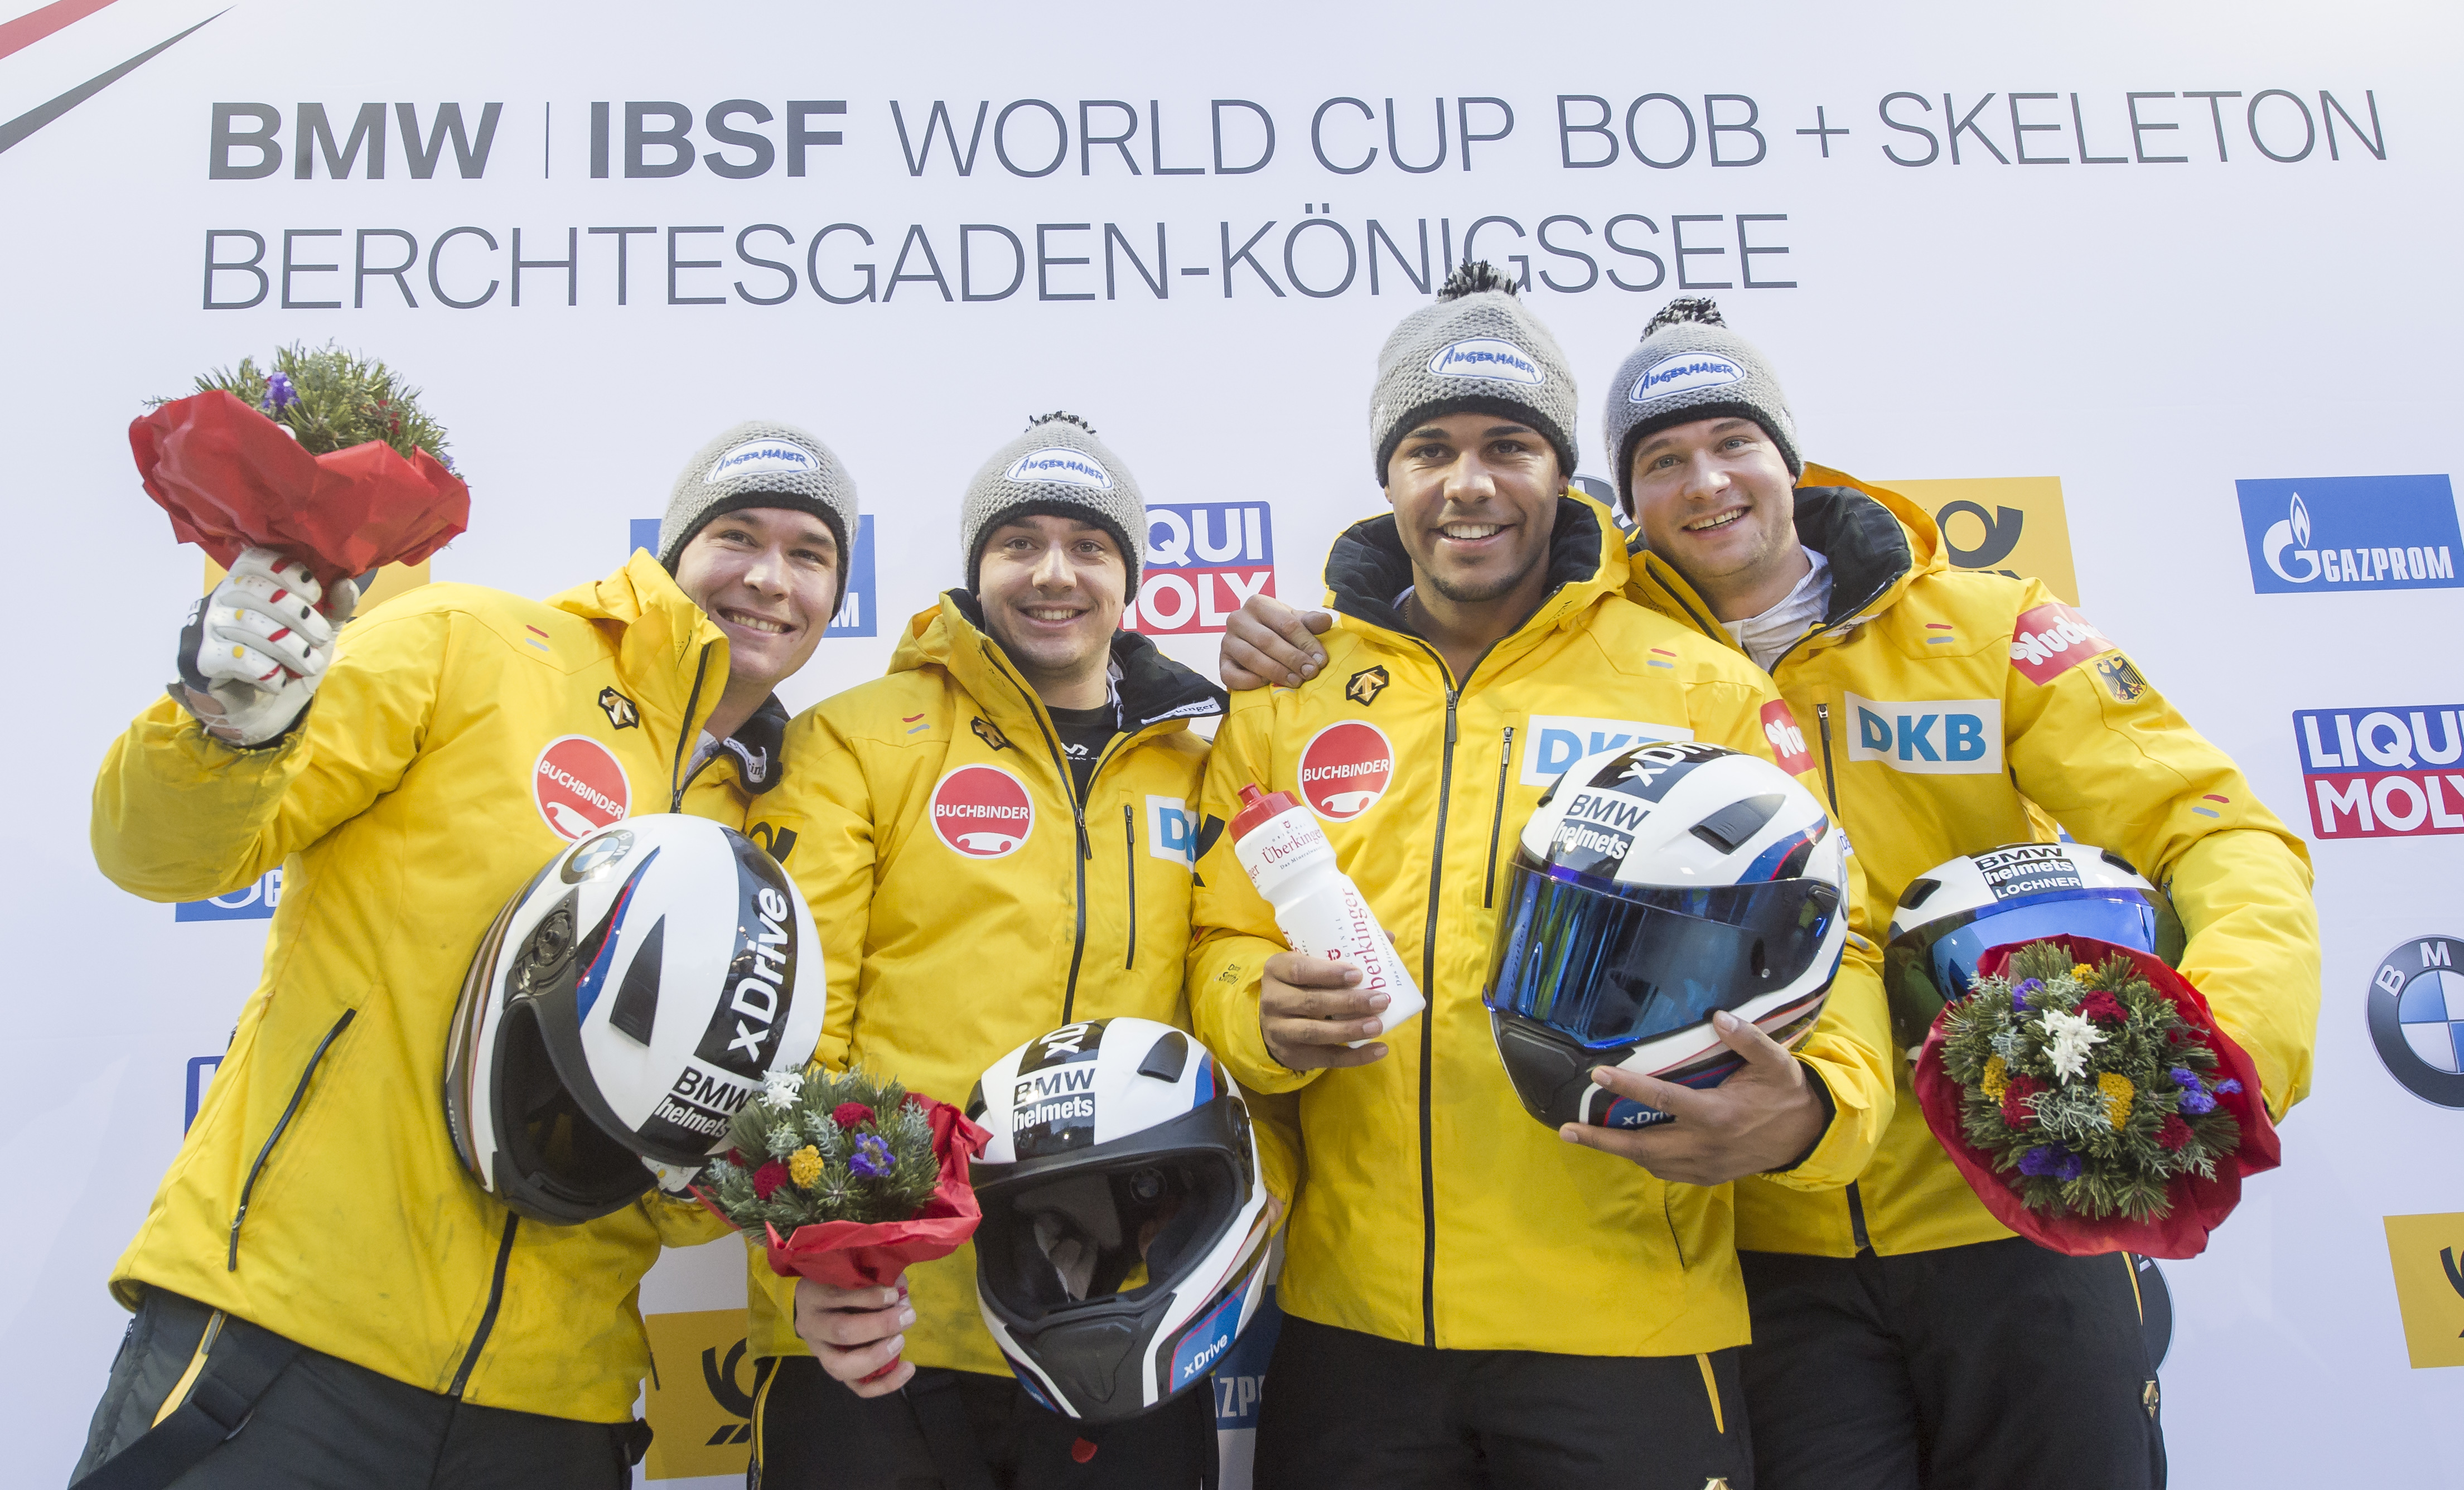 The German winning bobsled team with Johannes Lochner, right, Matthias Kagerhuber, 2nd left, Joshua Bluhm, 2nd right, and Christian Rasp, left, celebrate after the race during the four-men bobsled World Cup at lake Koengissee, Germany, Sunday, Jan. 29, 20